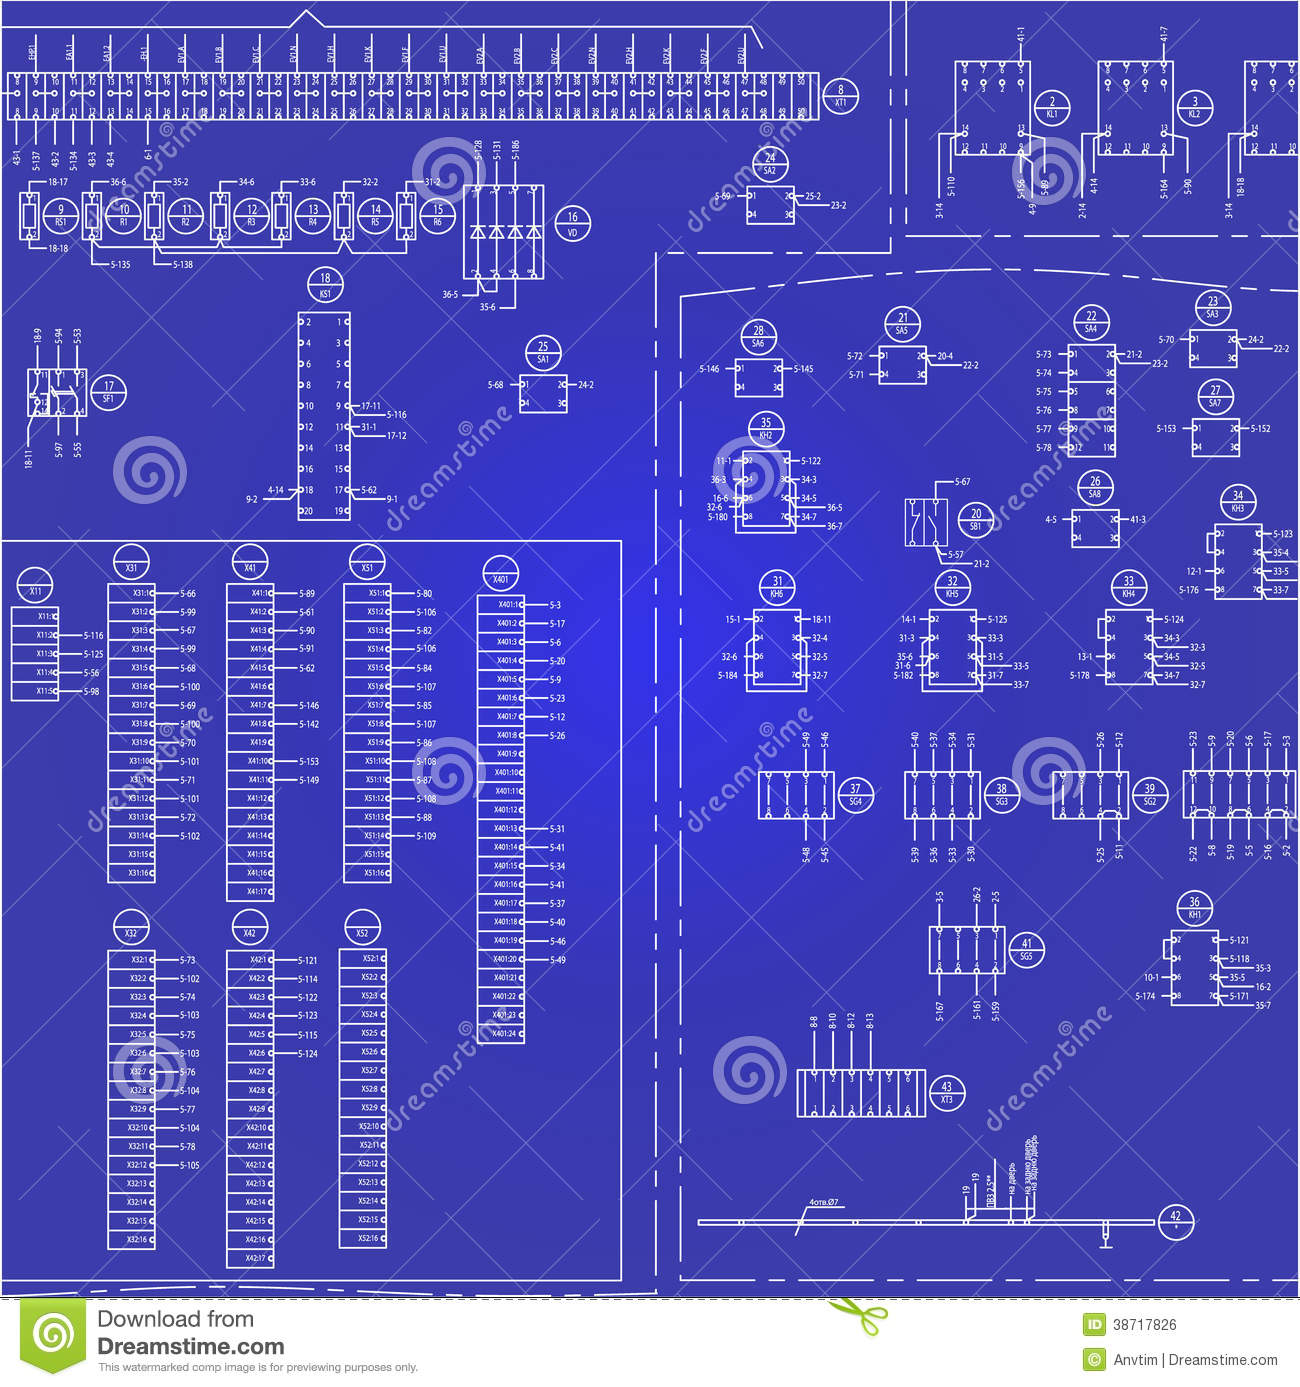 Schematic Of Atom Get Free Image About Wiring Diagram Electrical Stock Illustrations 1116 Vectors Clipart Dreamstime